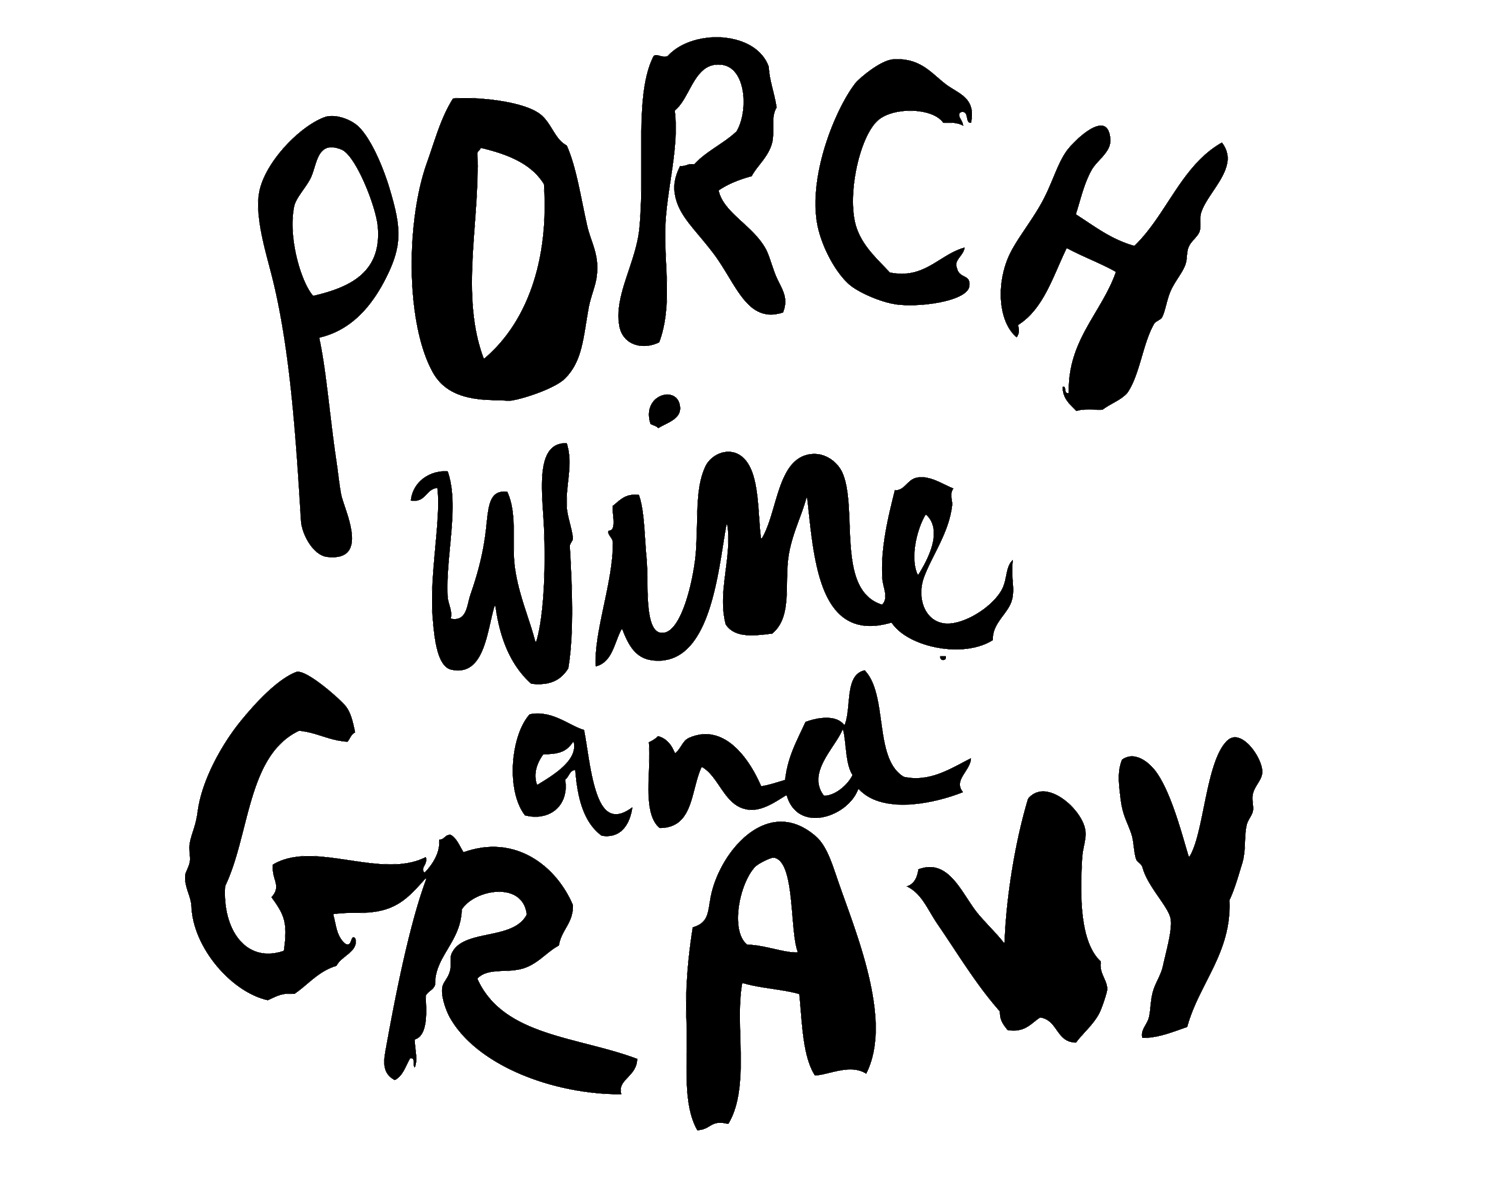 Porch,Wine & Gravy